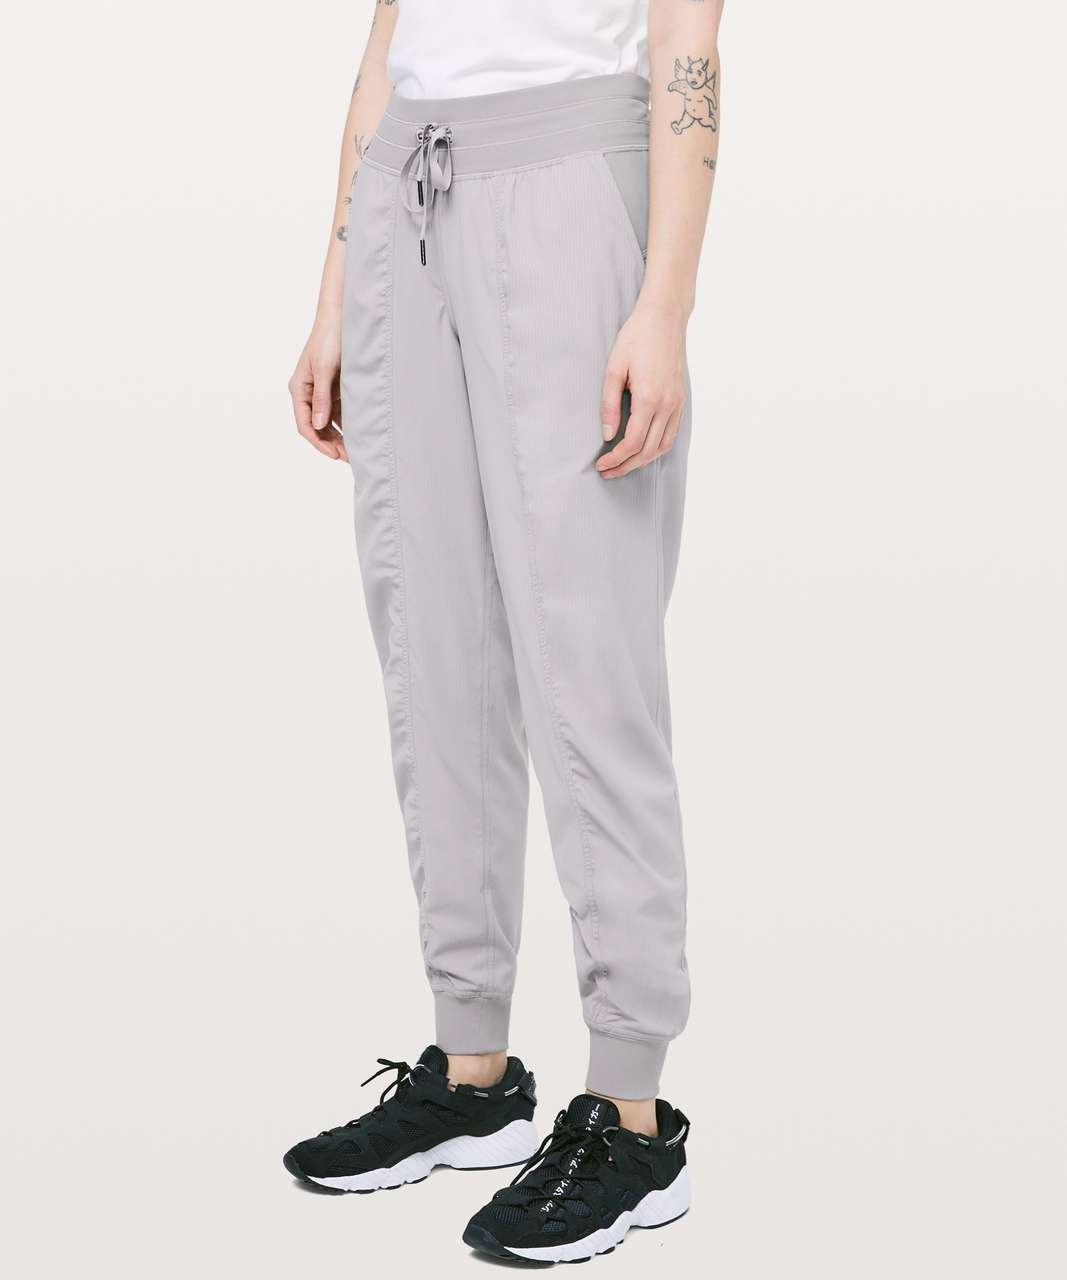 "Lululemon Dance Studio Jogger *29"" - Dark Chrome"